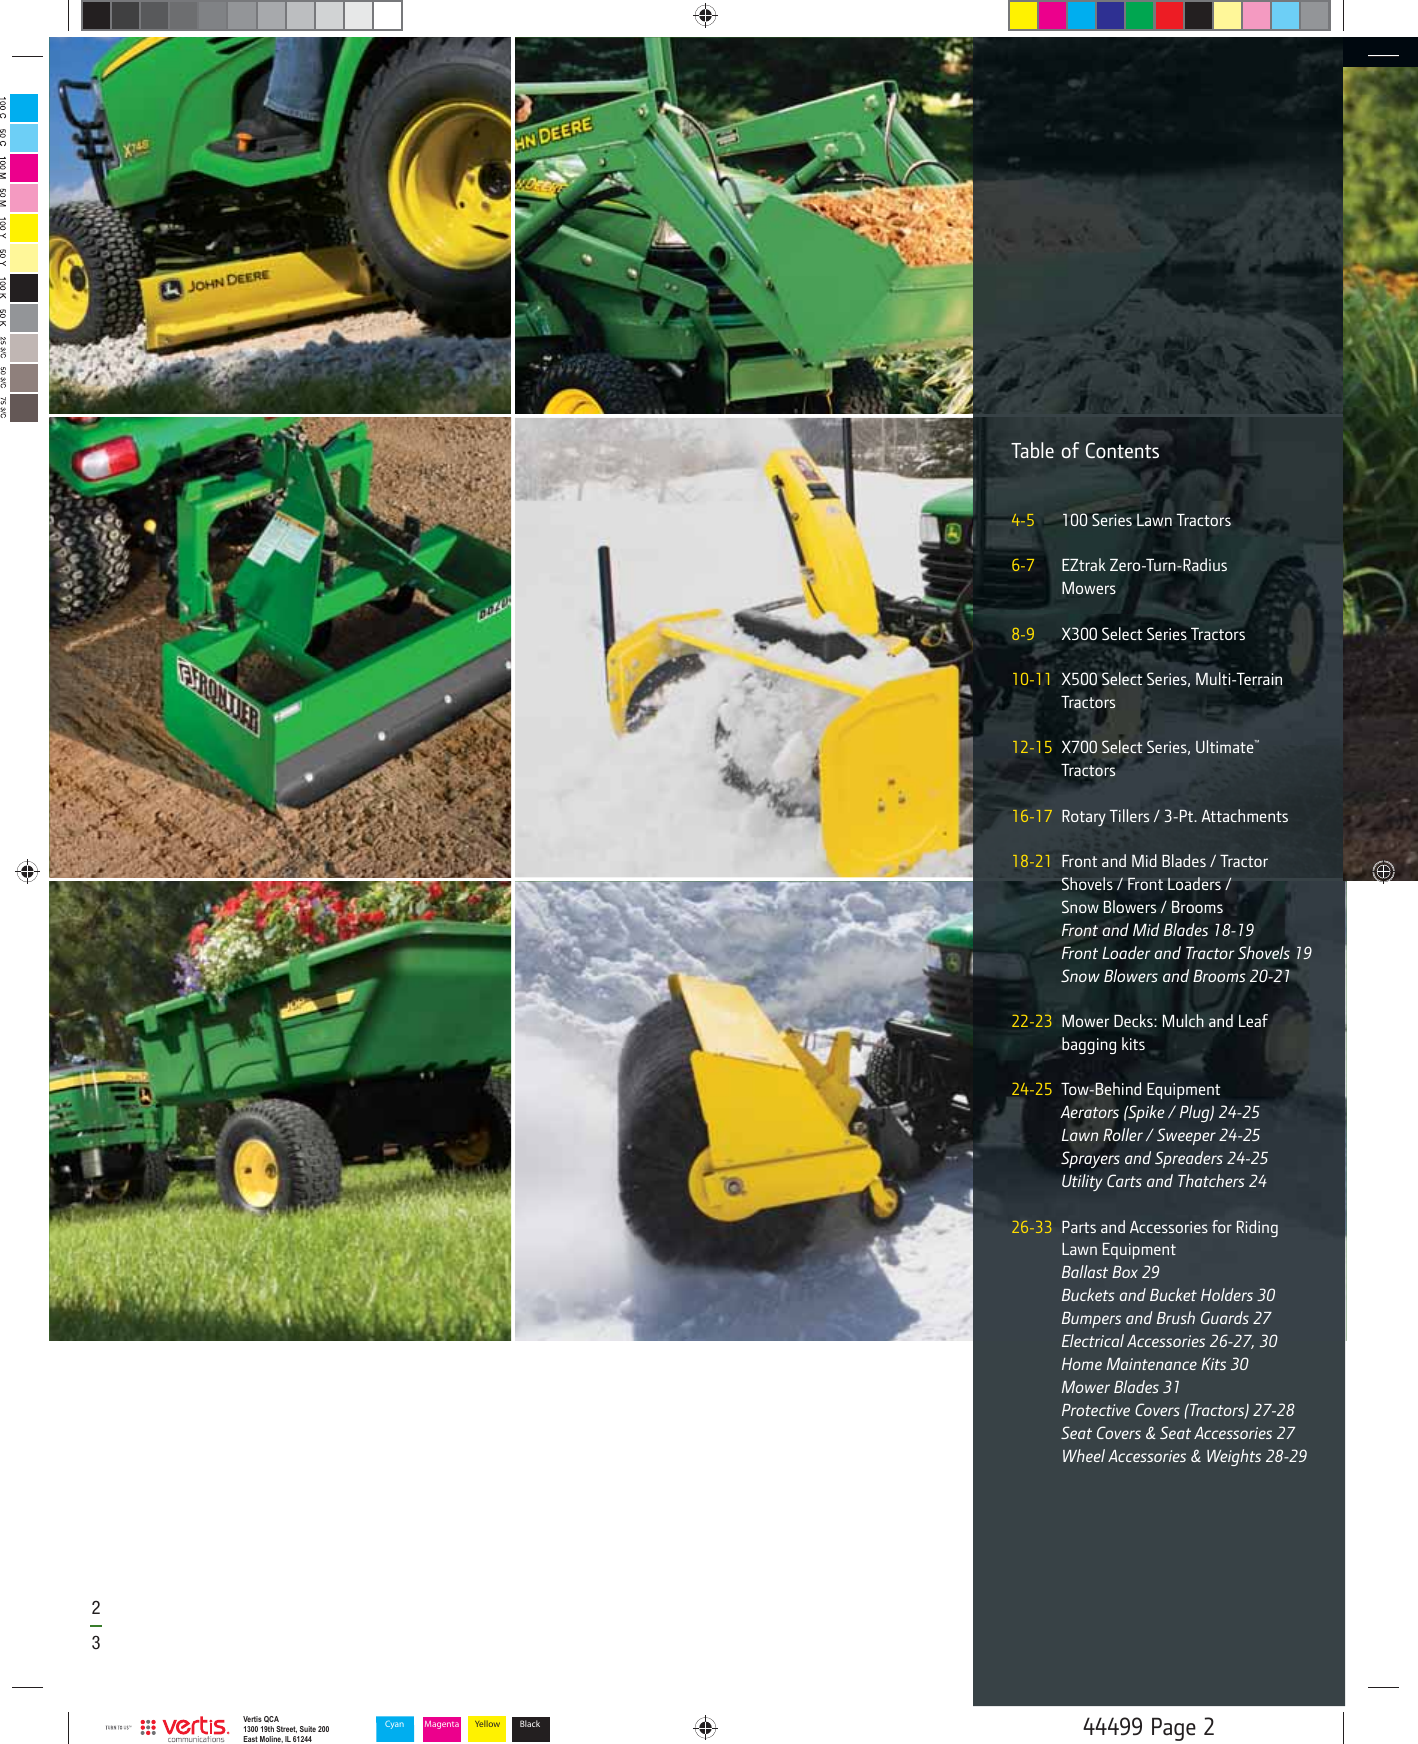 John Deere Products And Services Select Series Eztrak Zero Turn